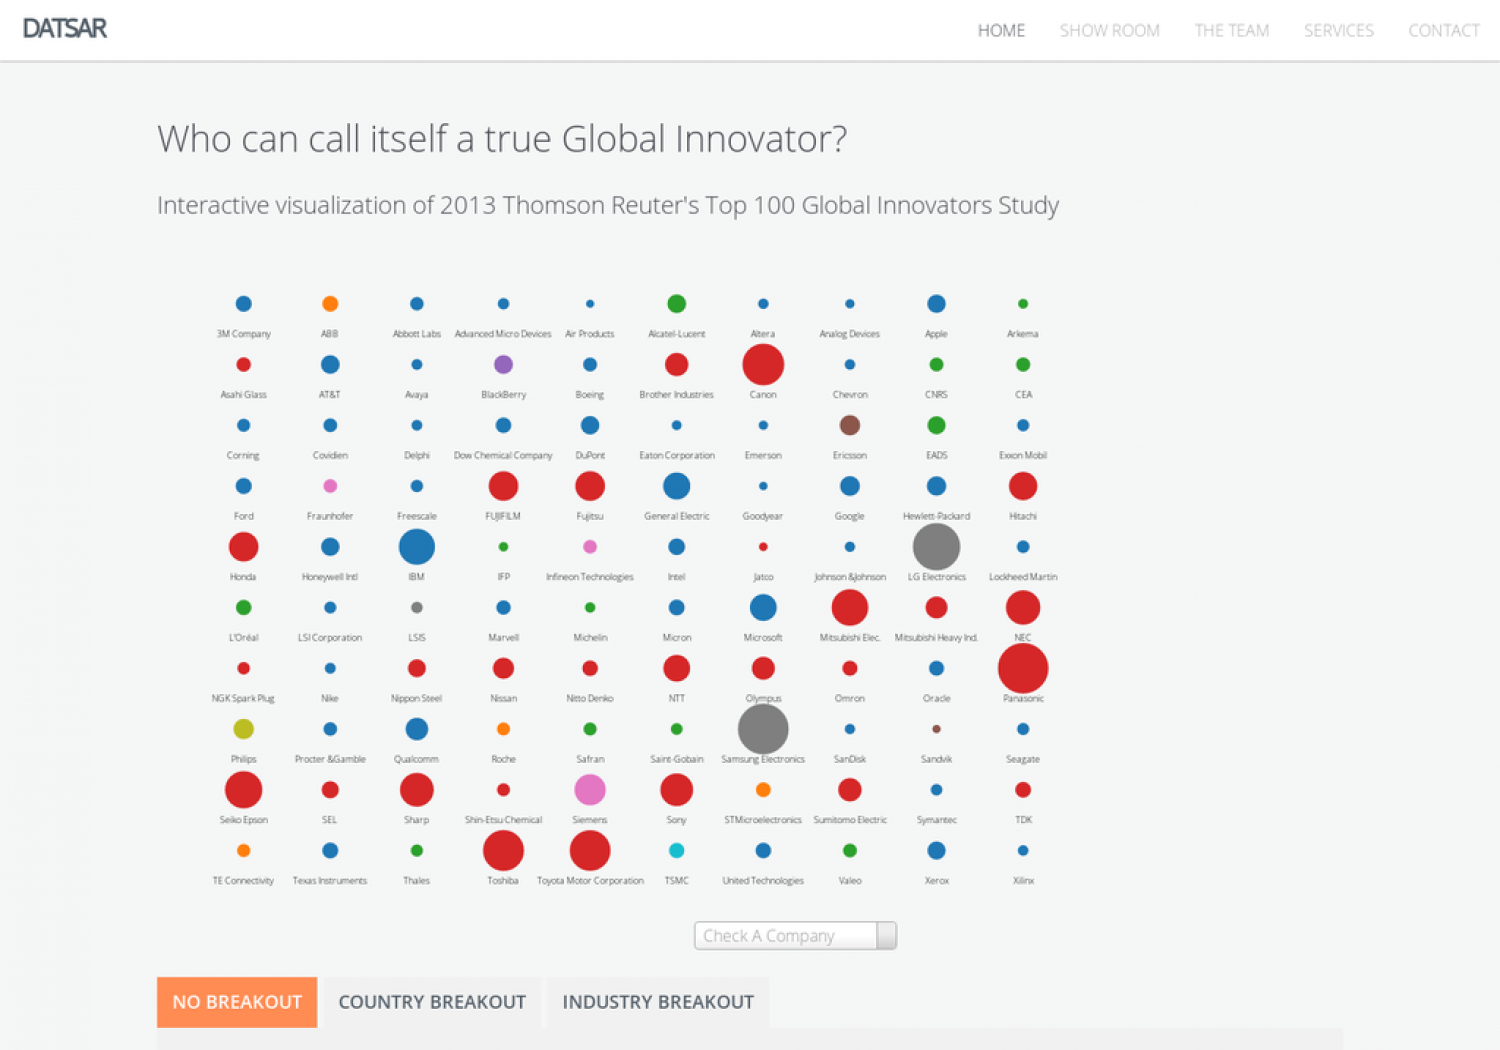 2013 Thomson Reuter's Top 100 Global Innovators Study Infographic